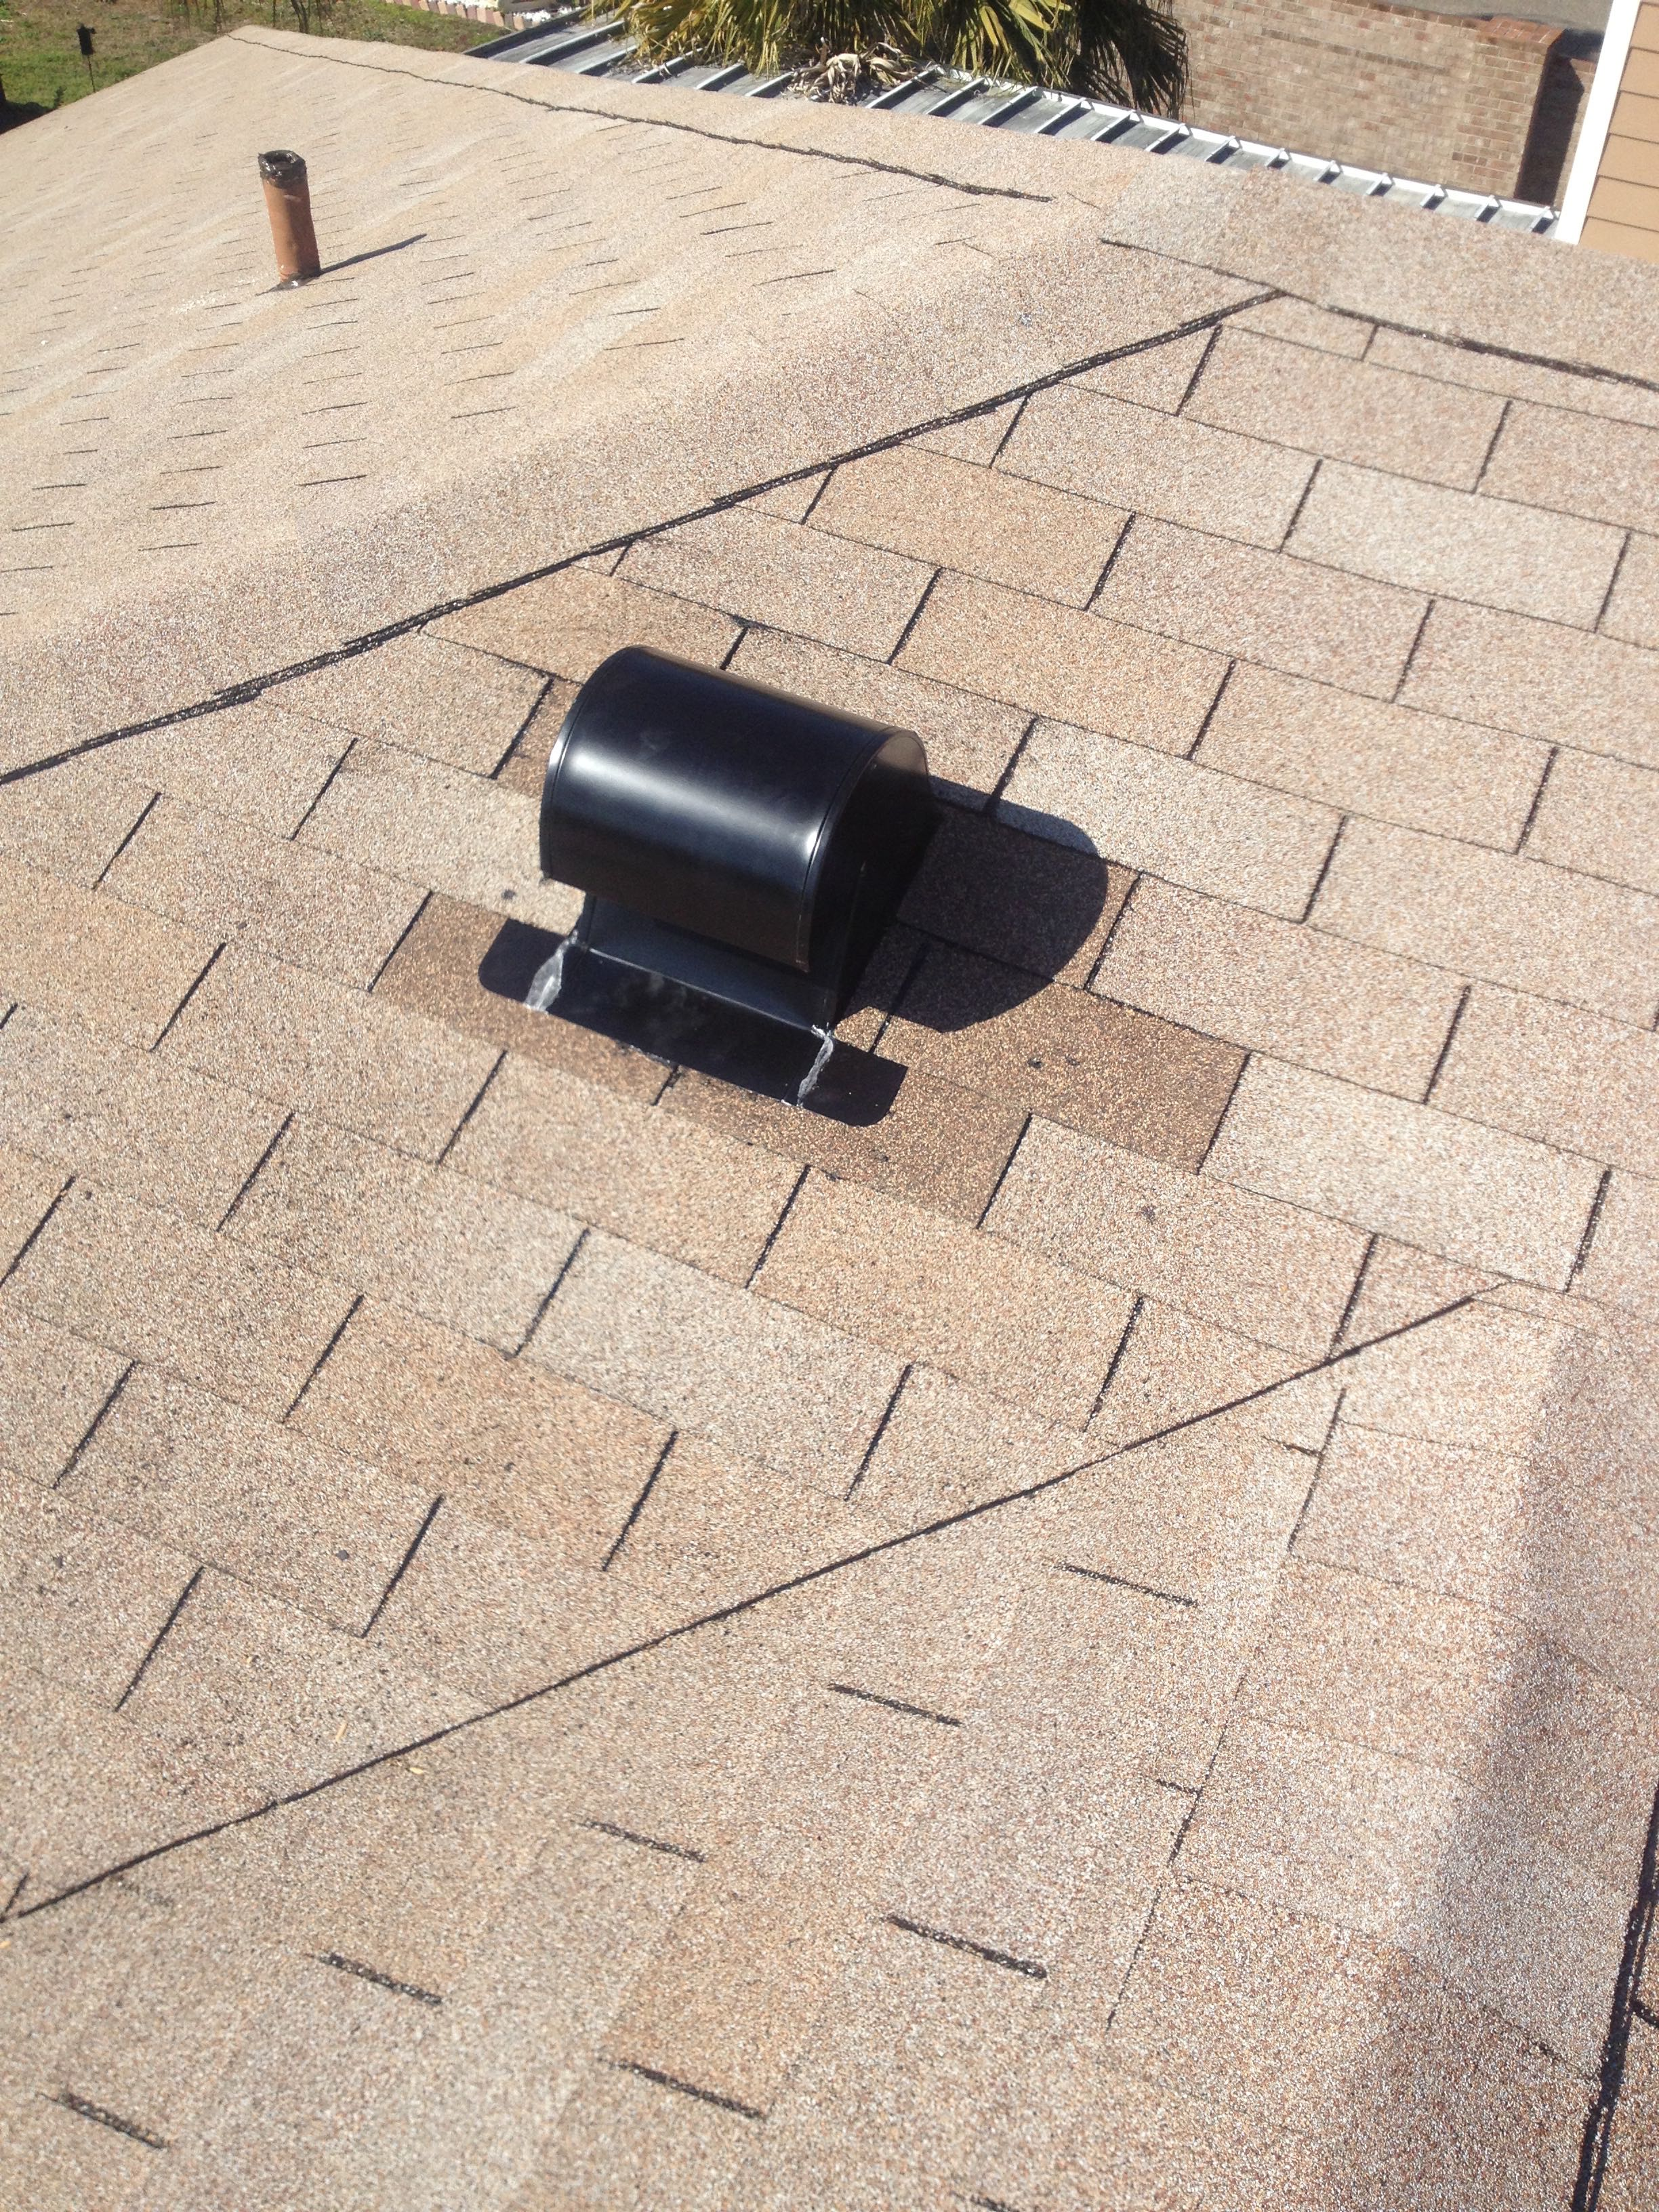 Kitchen Exhaust Vent Installed | bcoxroofing.com